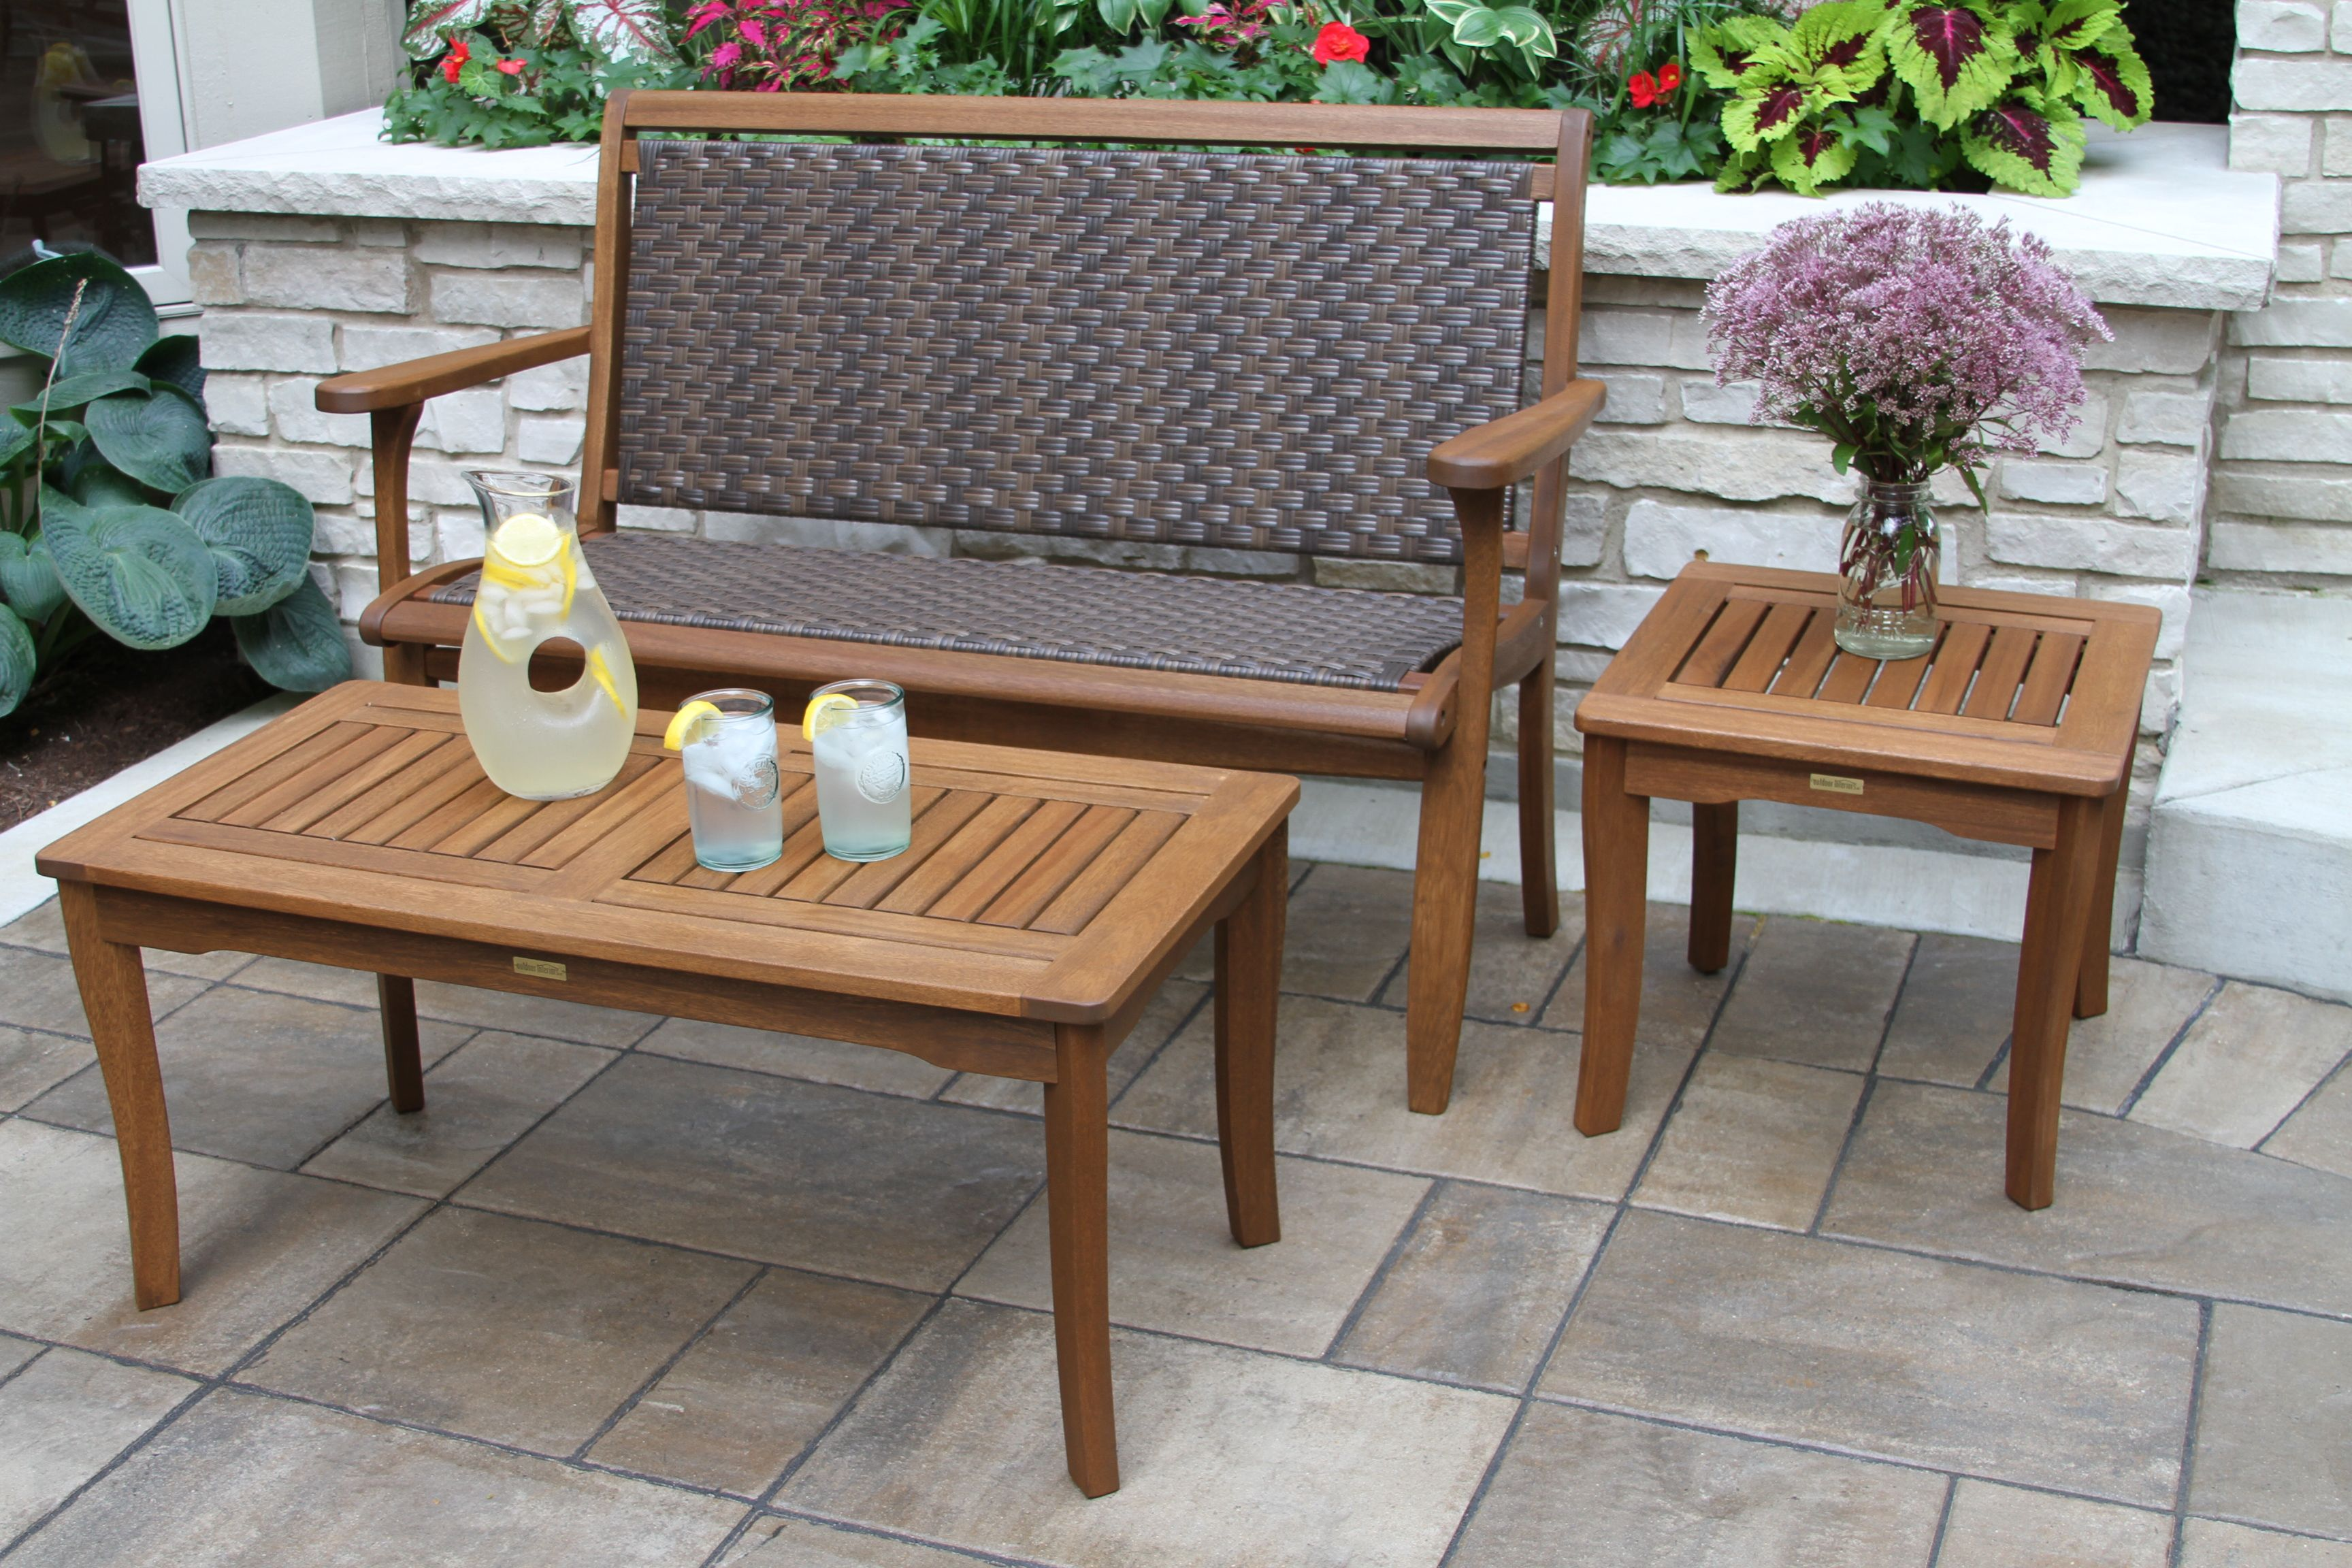 Brown Wicker Eucalyptus Hardwood Bench For Decks Patios